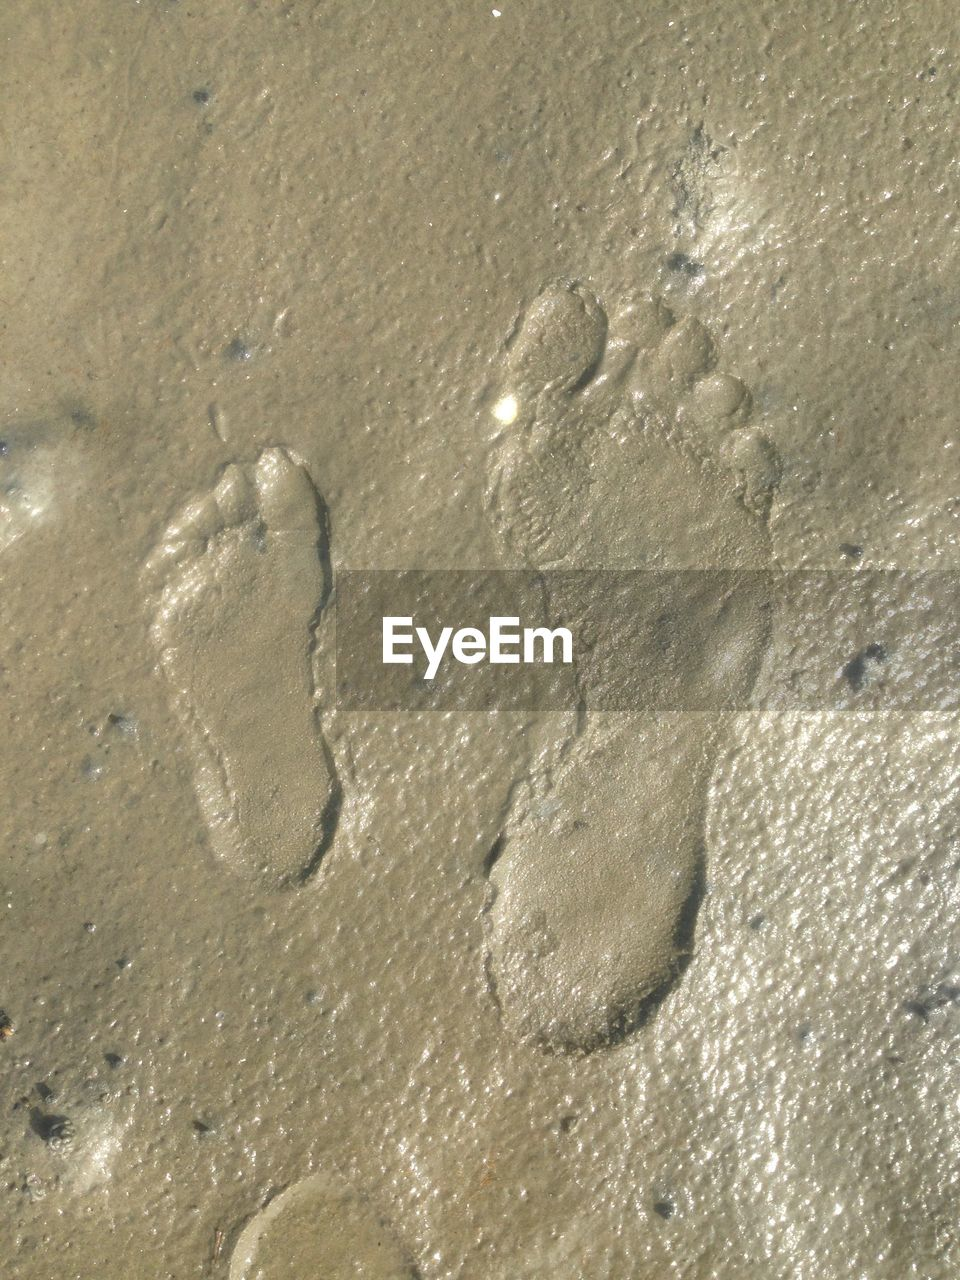 sand, beach, footprint, no people, track - imprint, paw print, high angle view, nature, backgrounds, day, outdoors, close-up, water